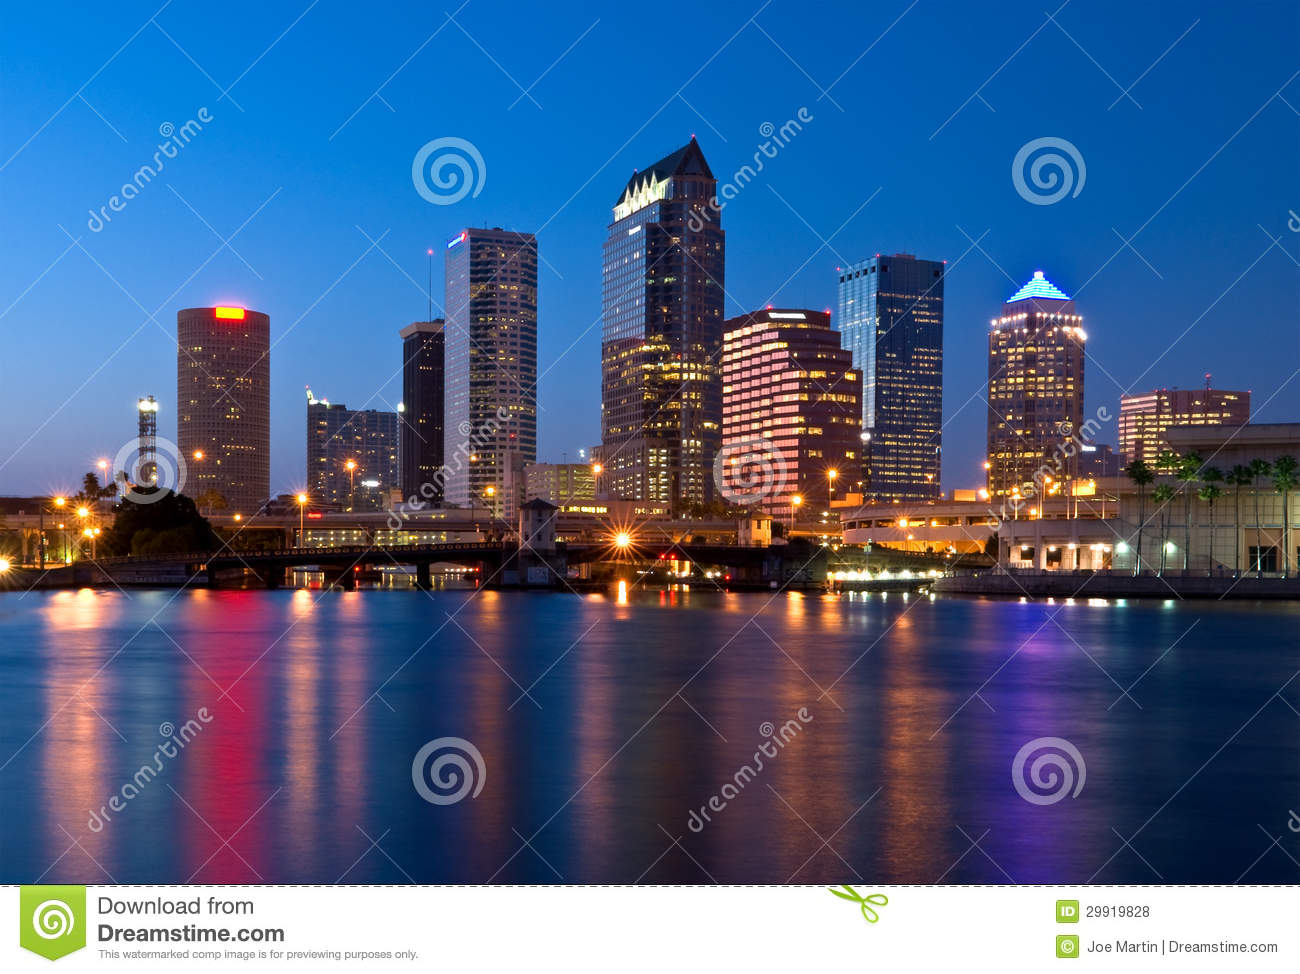 Photo Wallpaper 3d In Tampa Fl Downtown Tampa Skyline Royalty Free Stock Photos Image